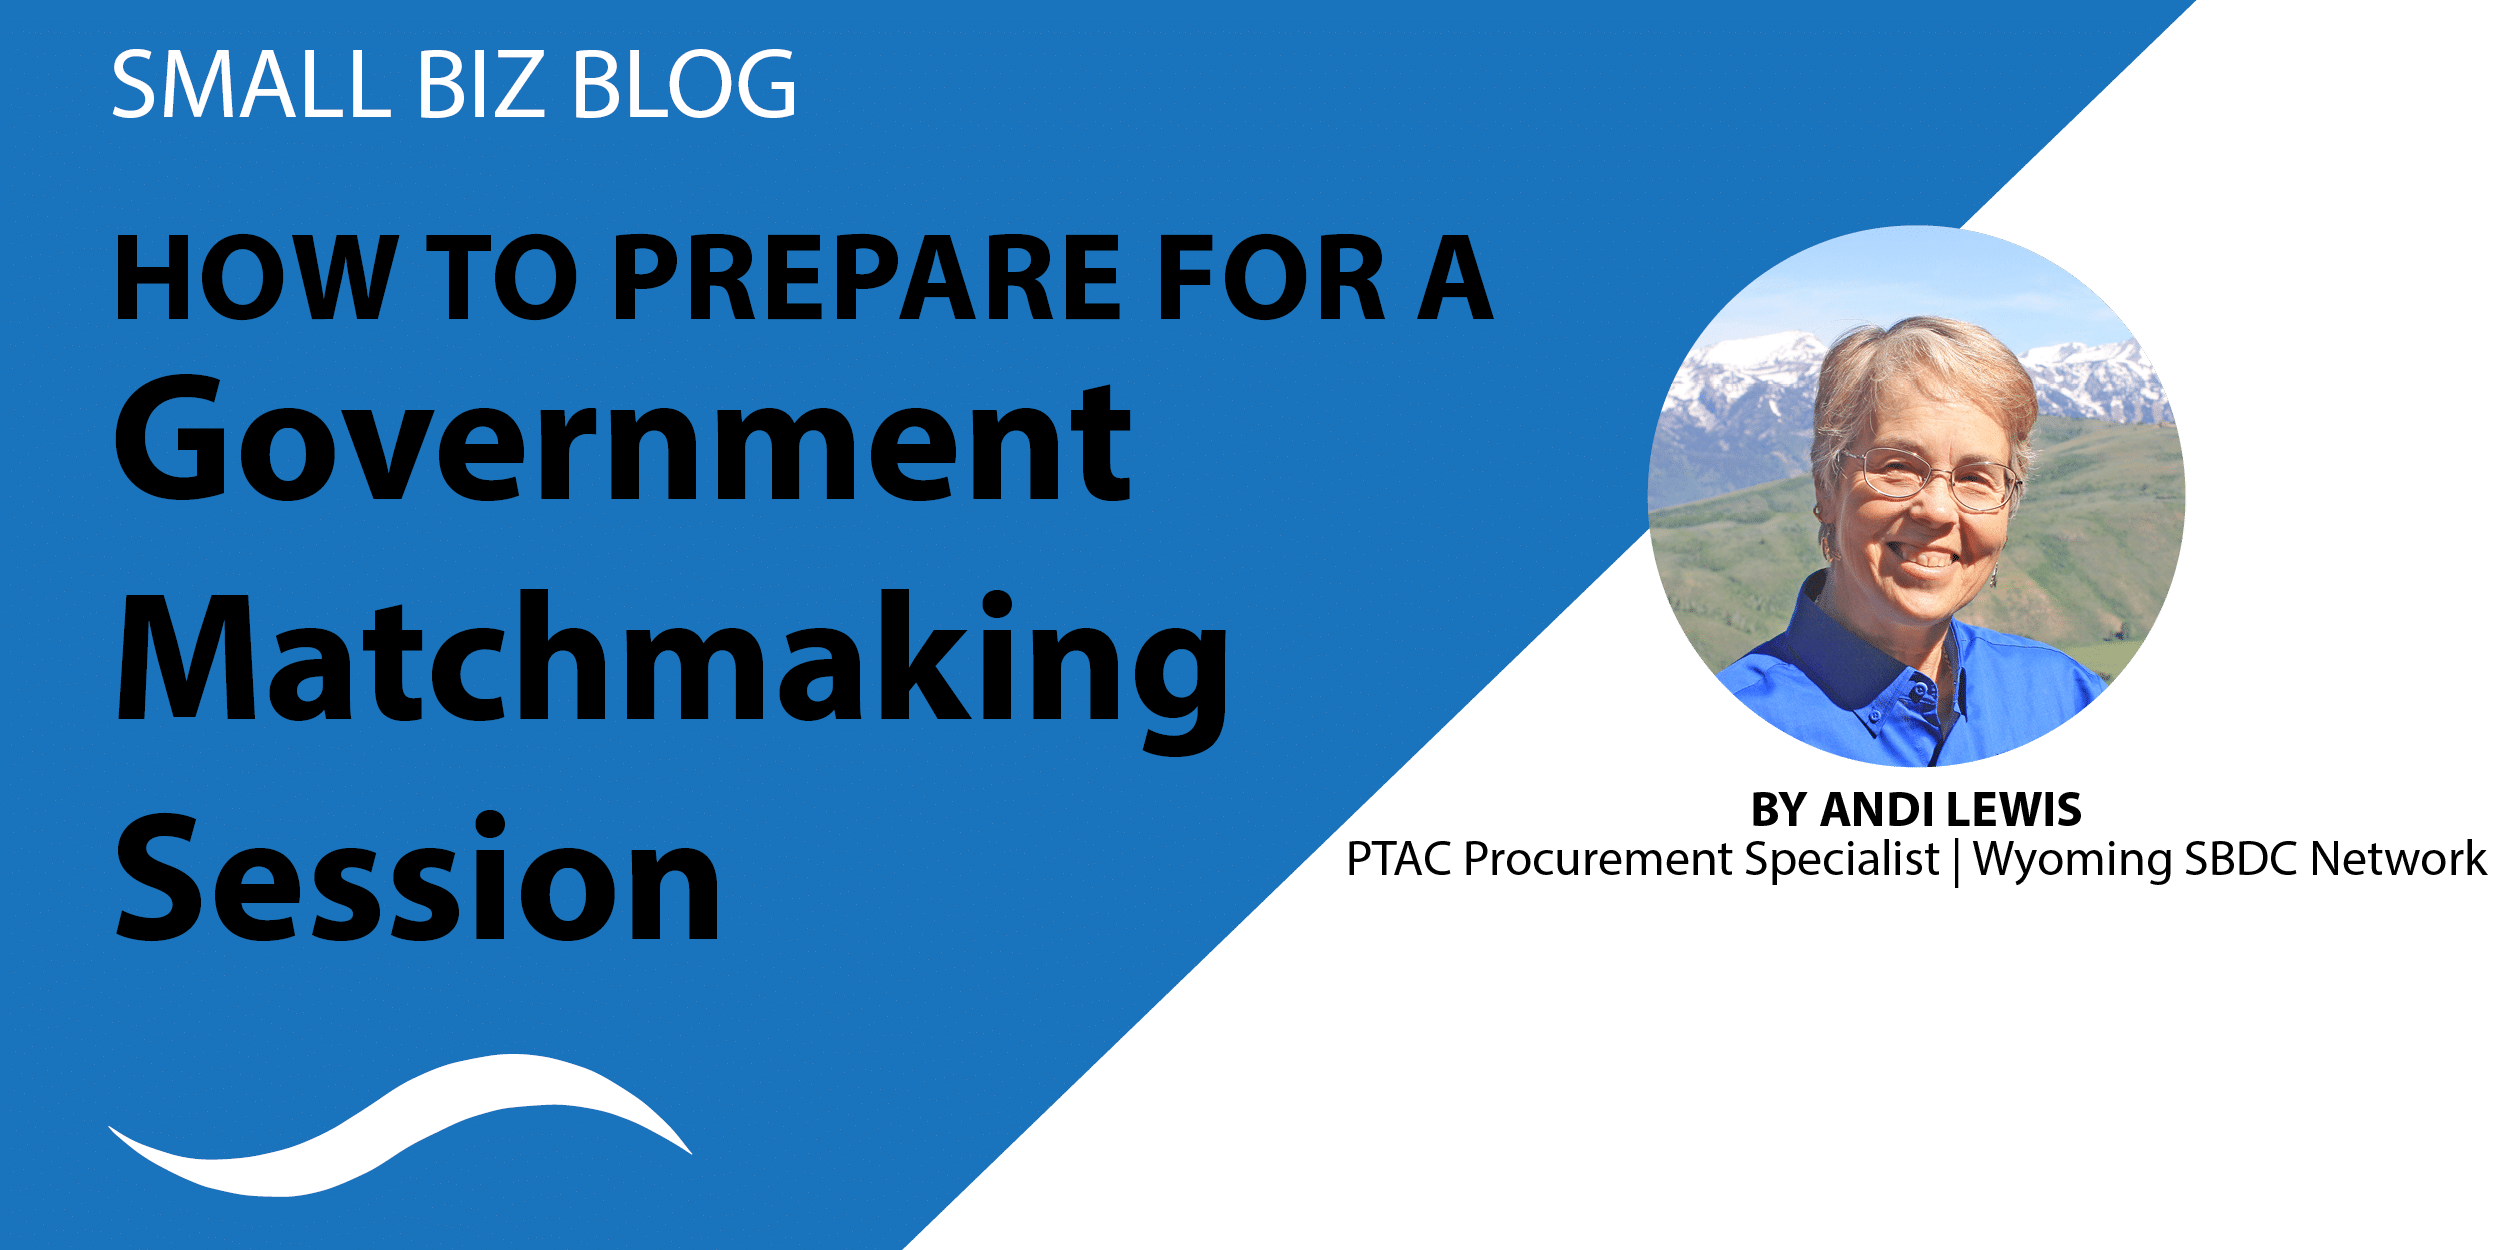 How to Prepare for a Government Matchmaking Session